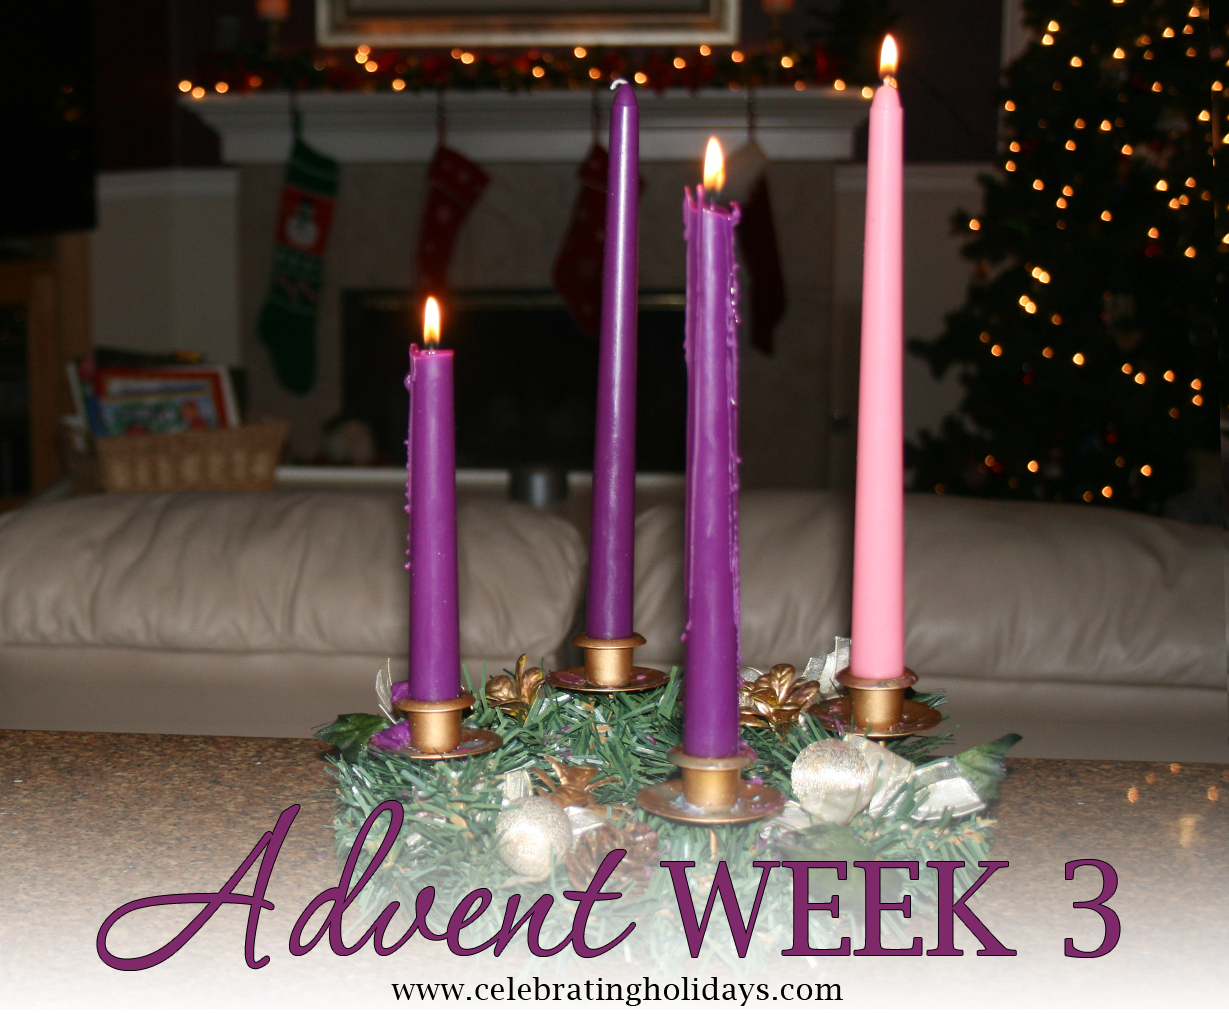 Advent Week 3 Reading, Music, and Candle Lighting